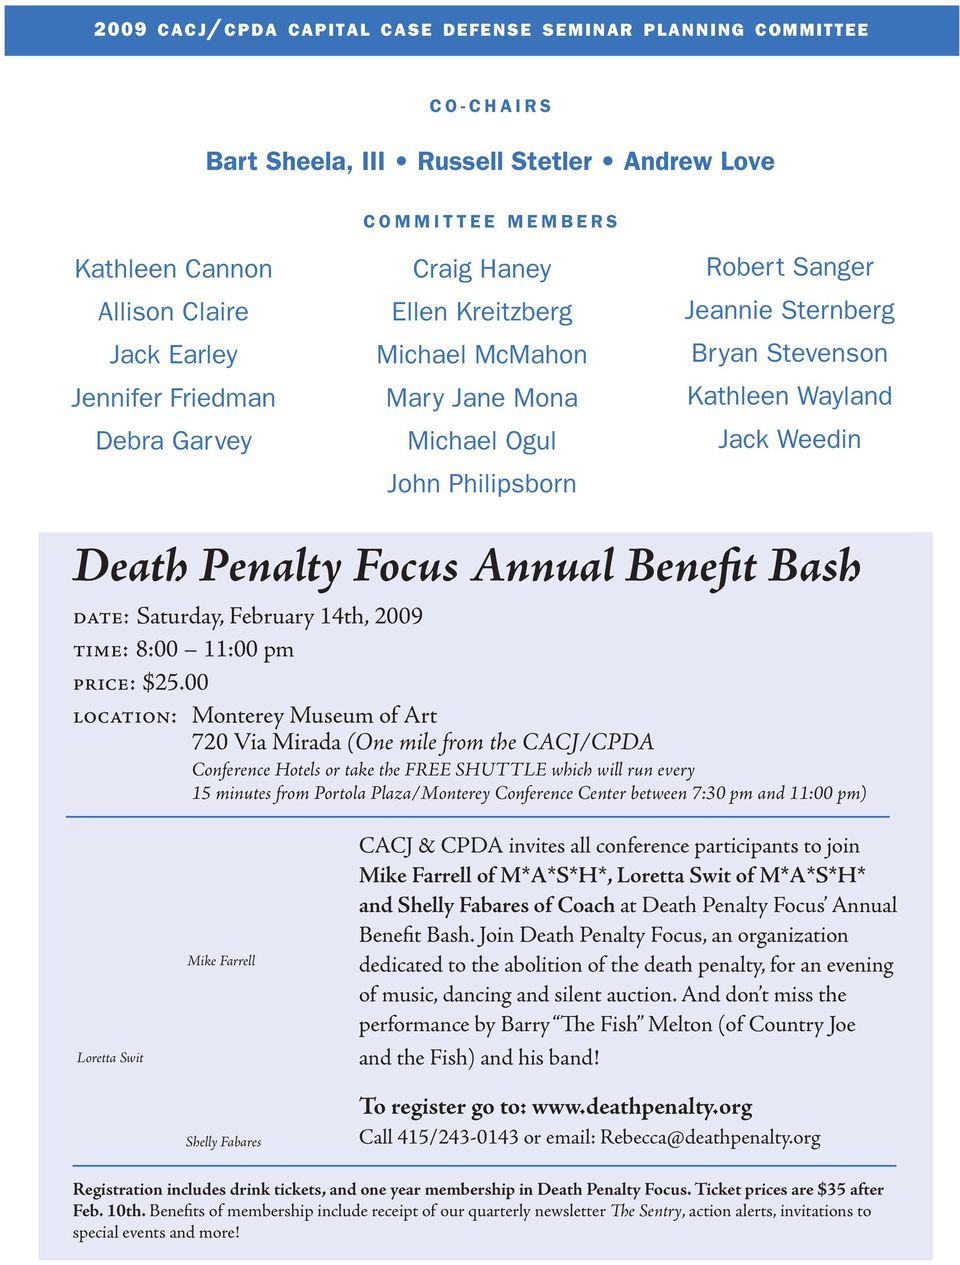 Wayland Jack Weedin Death Penalty Focus Annual Benefit Bash date: Saturday, February 14th, 2009 time: 8:00 11:00 pm price: $25.